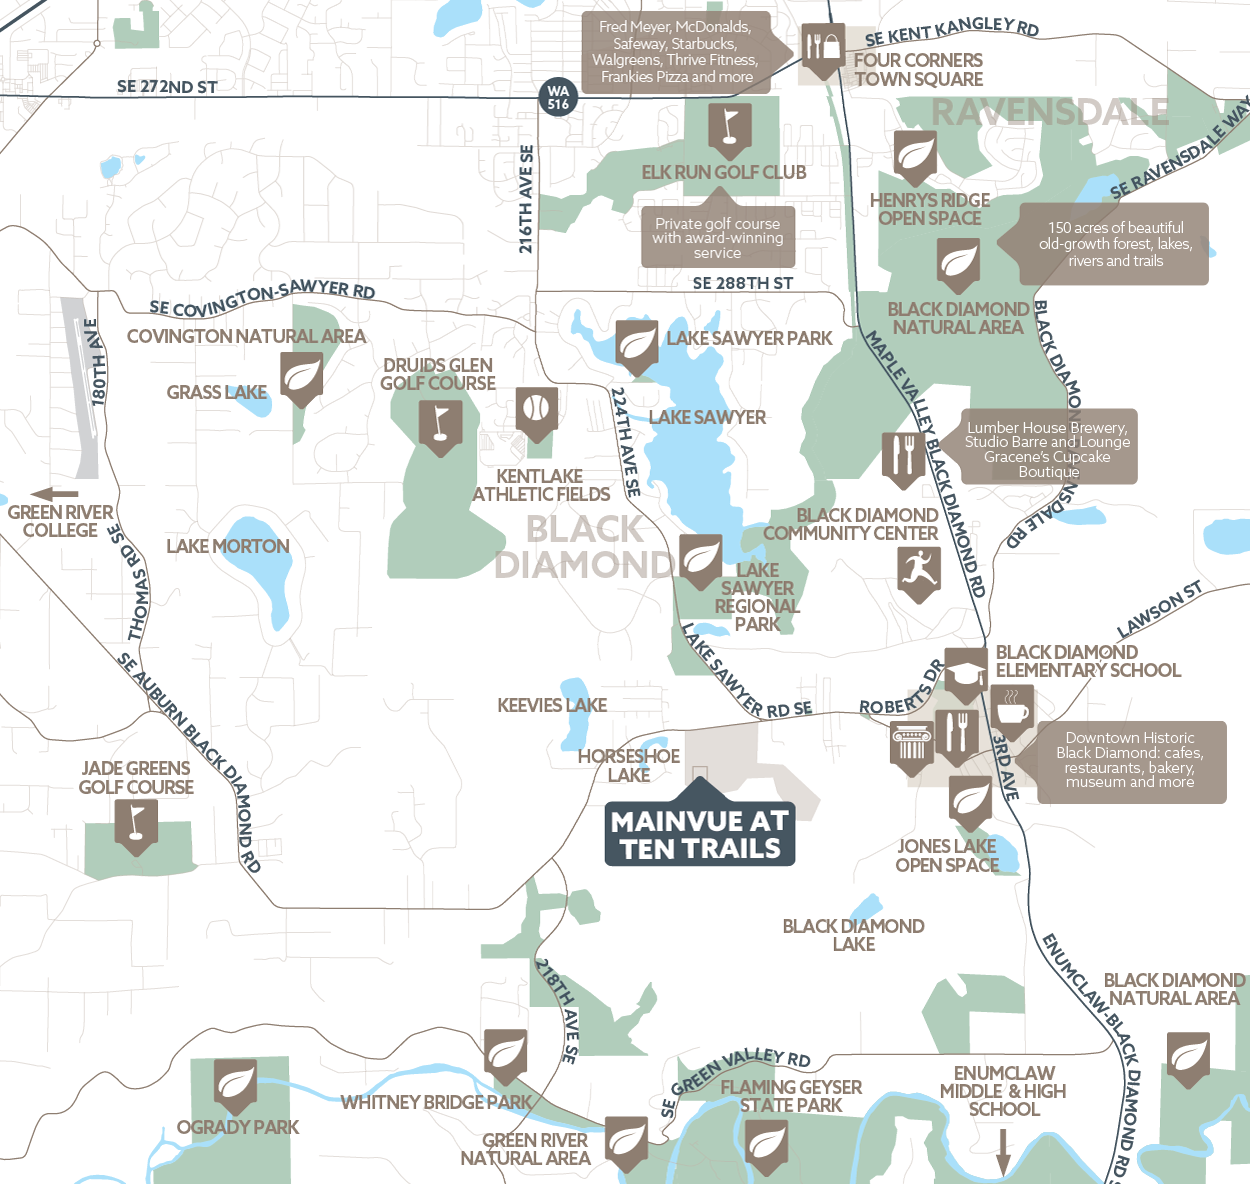 MainVue at Ten Trails amenity map